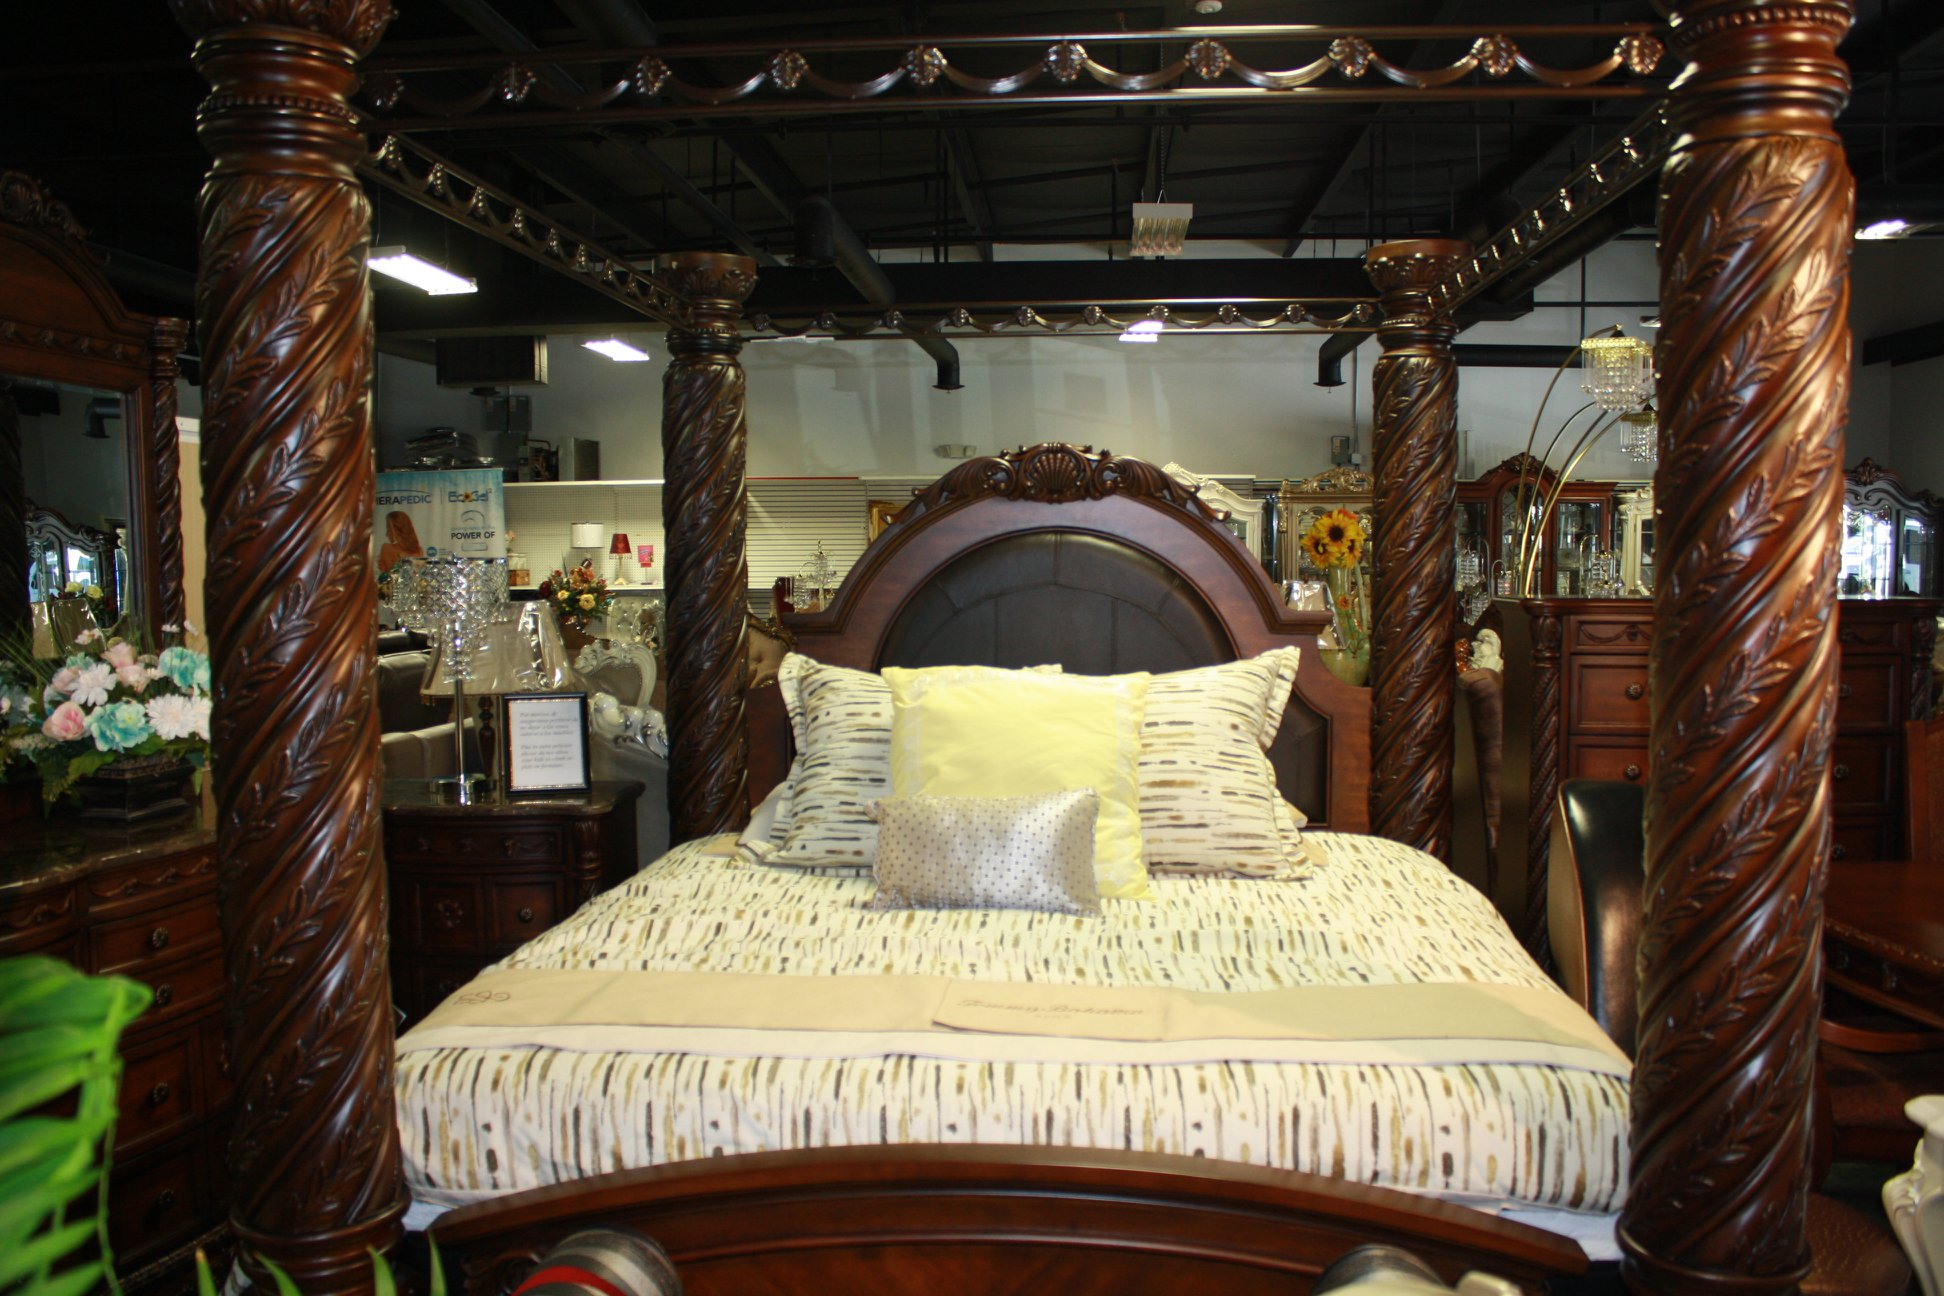 sion furniture market greensboro north carolina. Black Bedroom Furniture Sets. Home Design Ideas